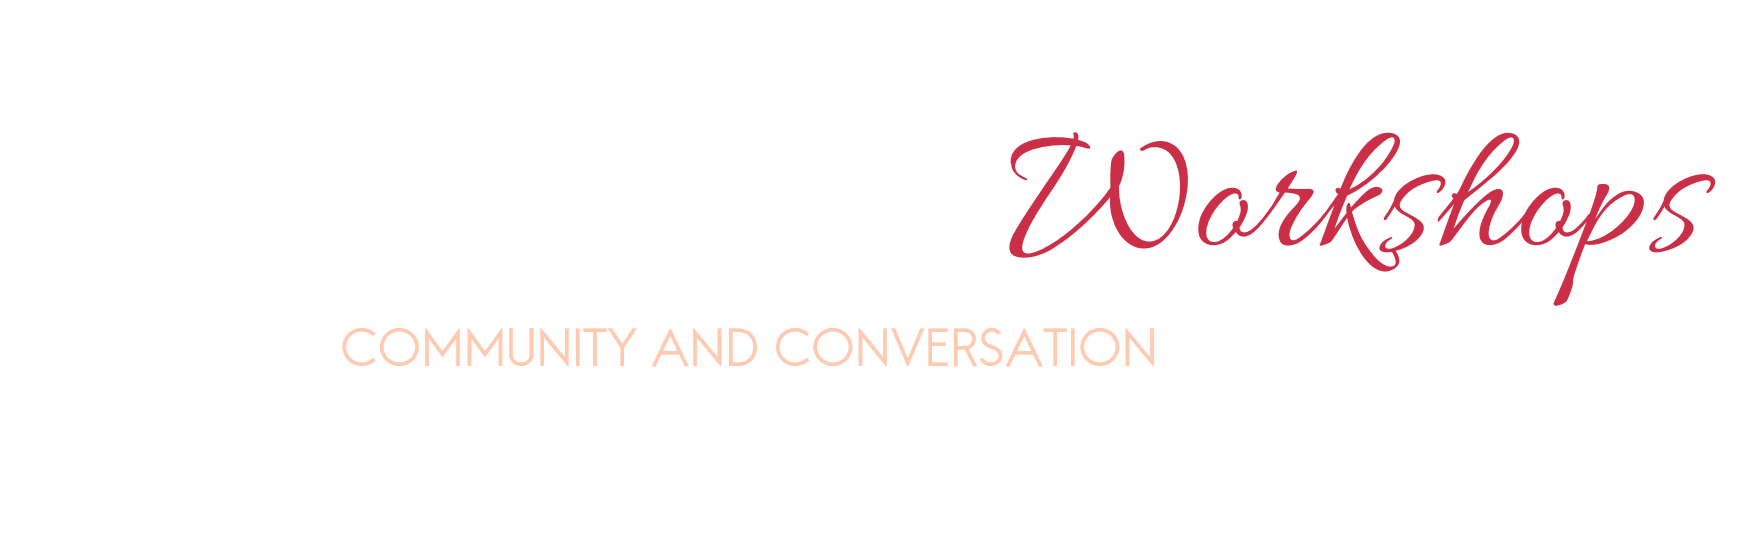 Hourglass Workshops